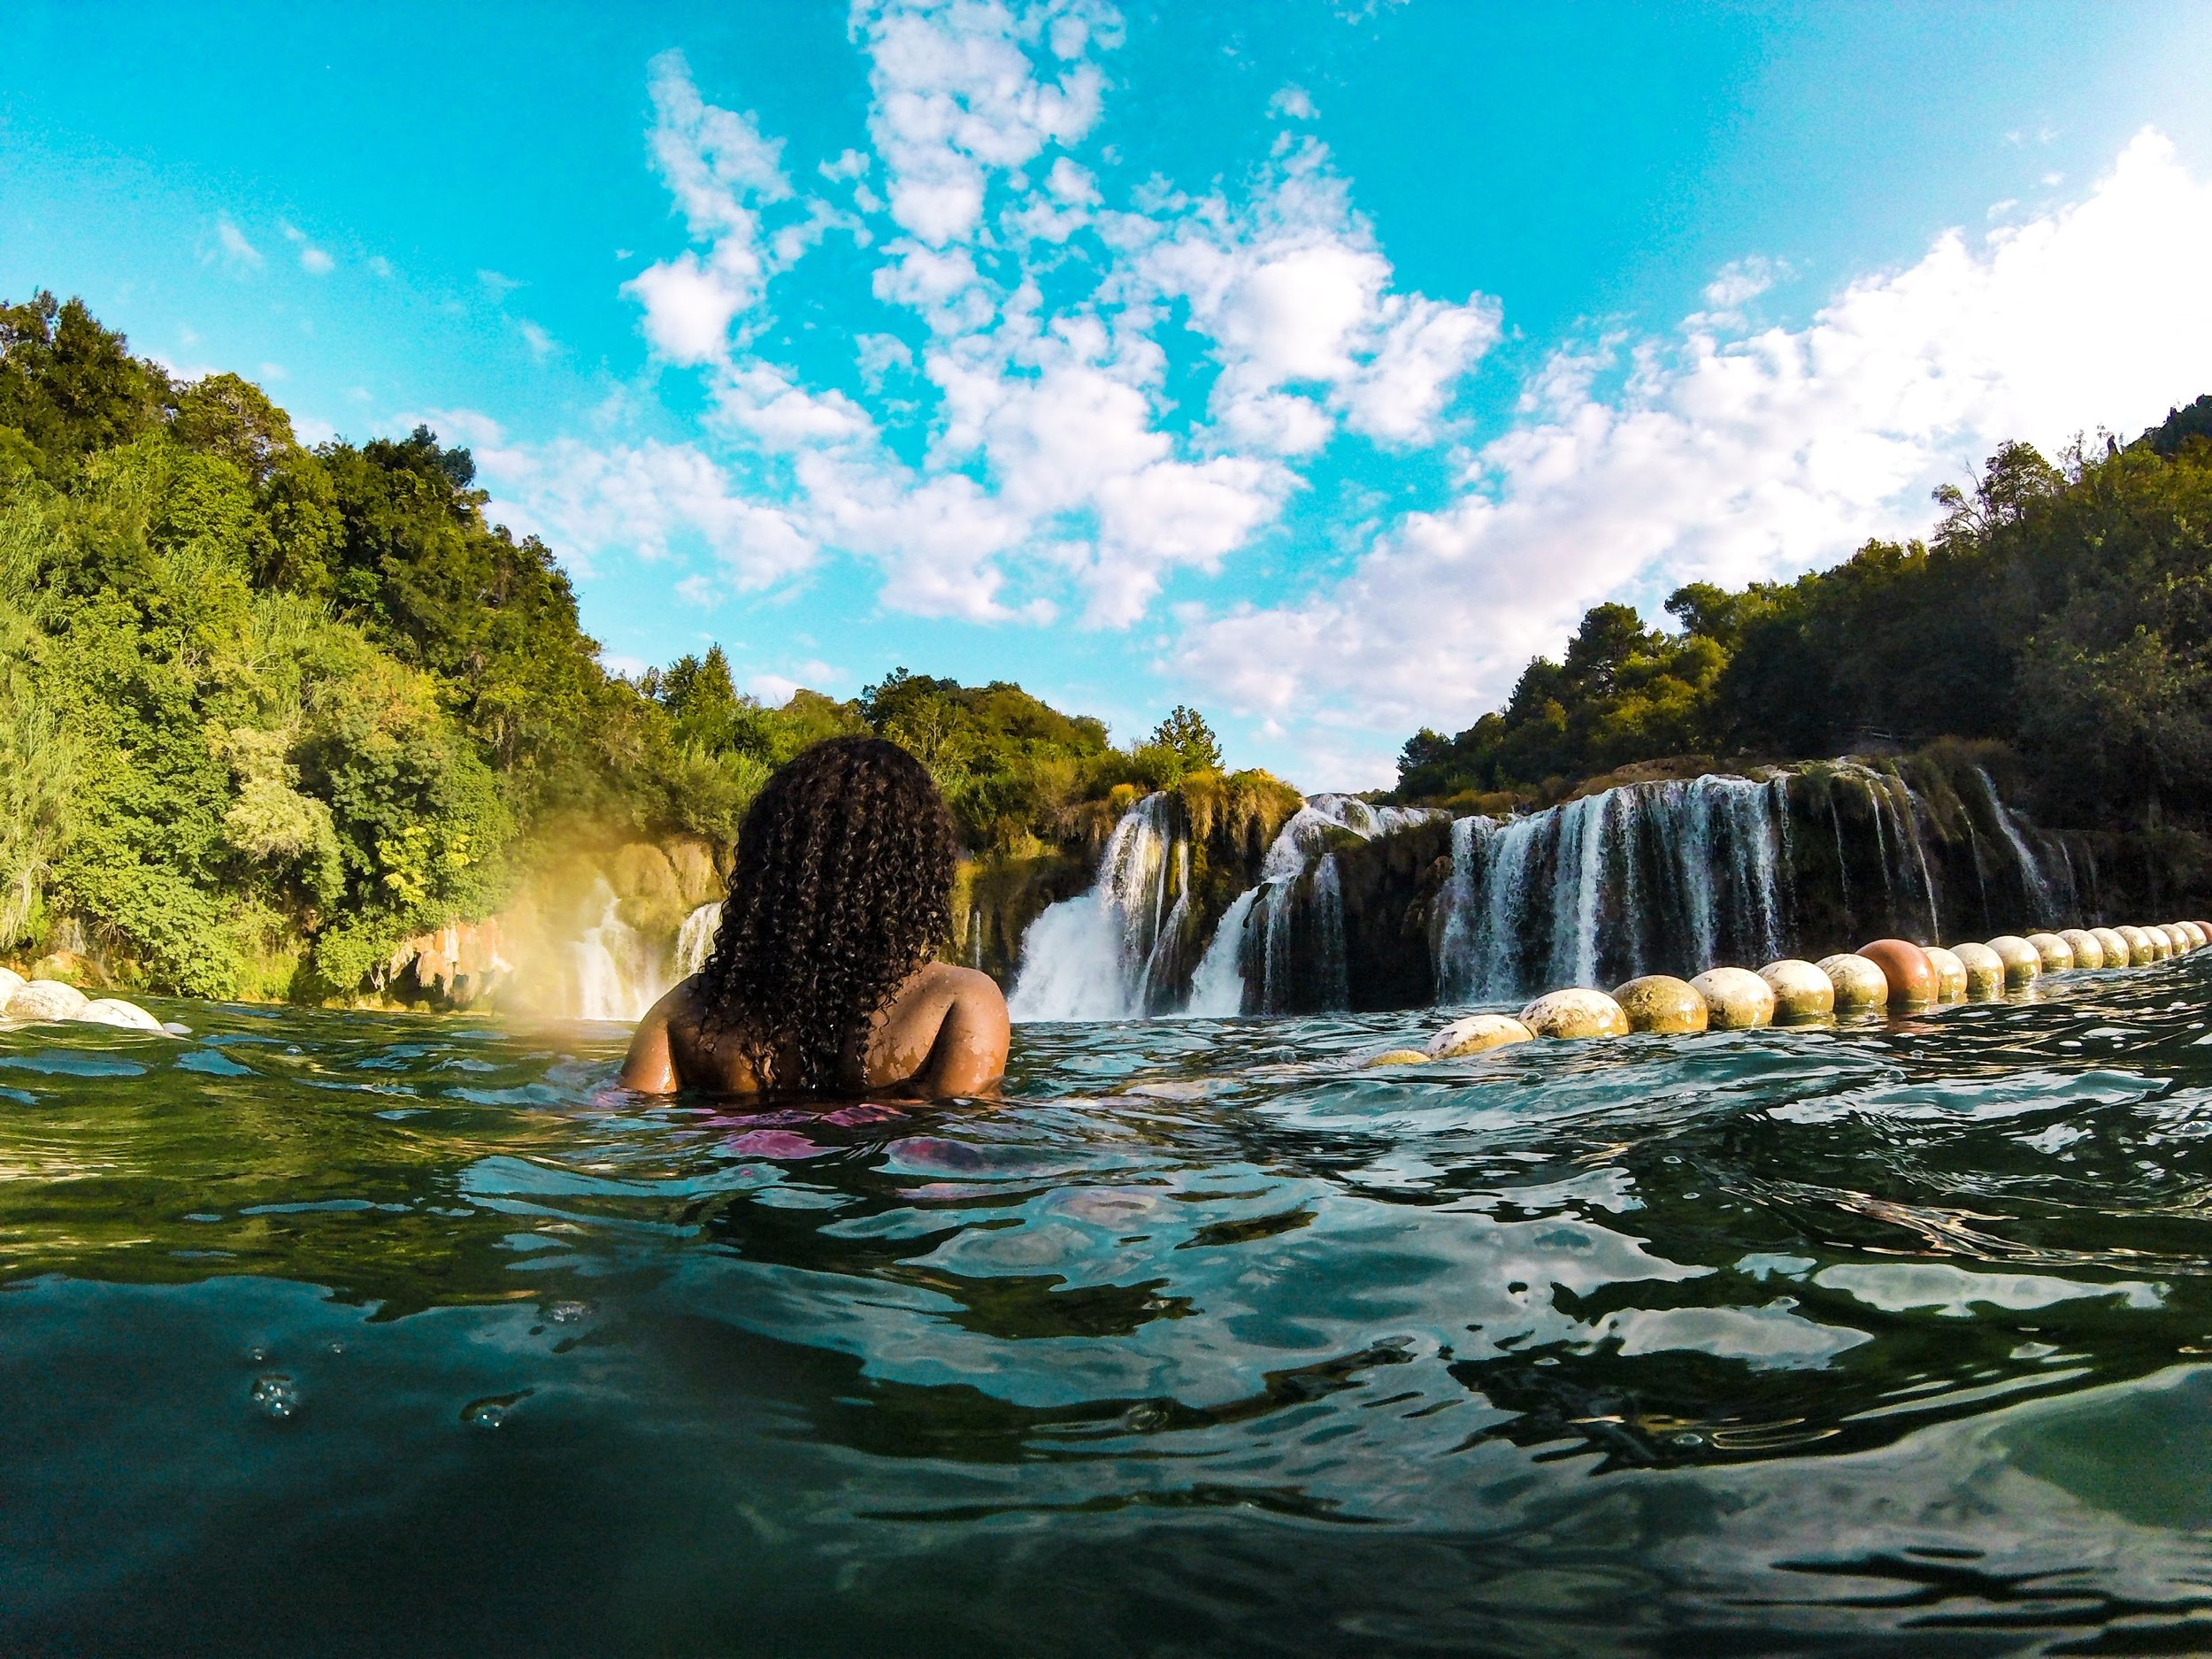 This photo was taken with a go-pro at Krka National Park in Croatia